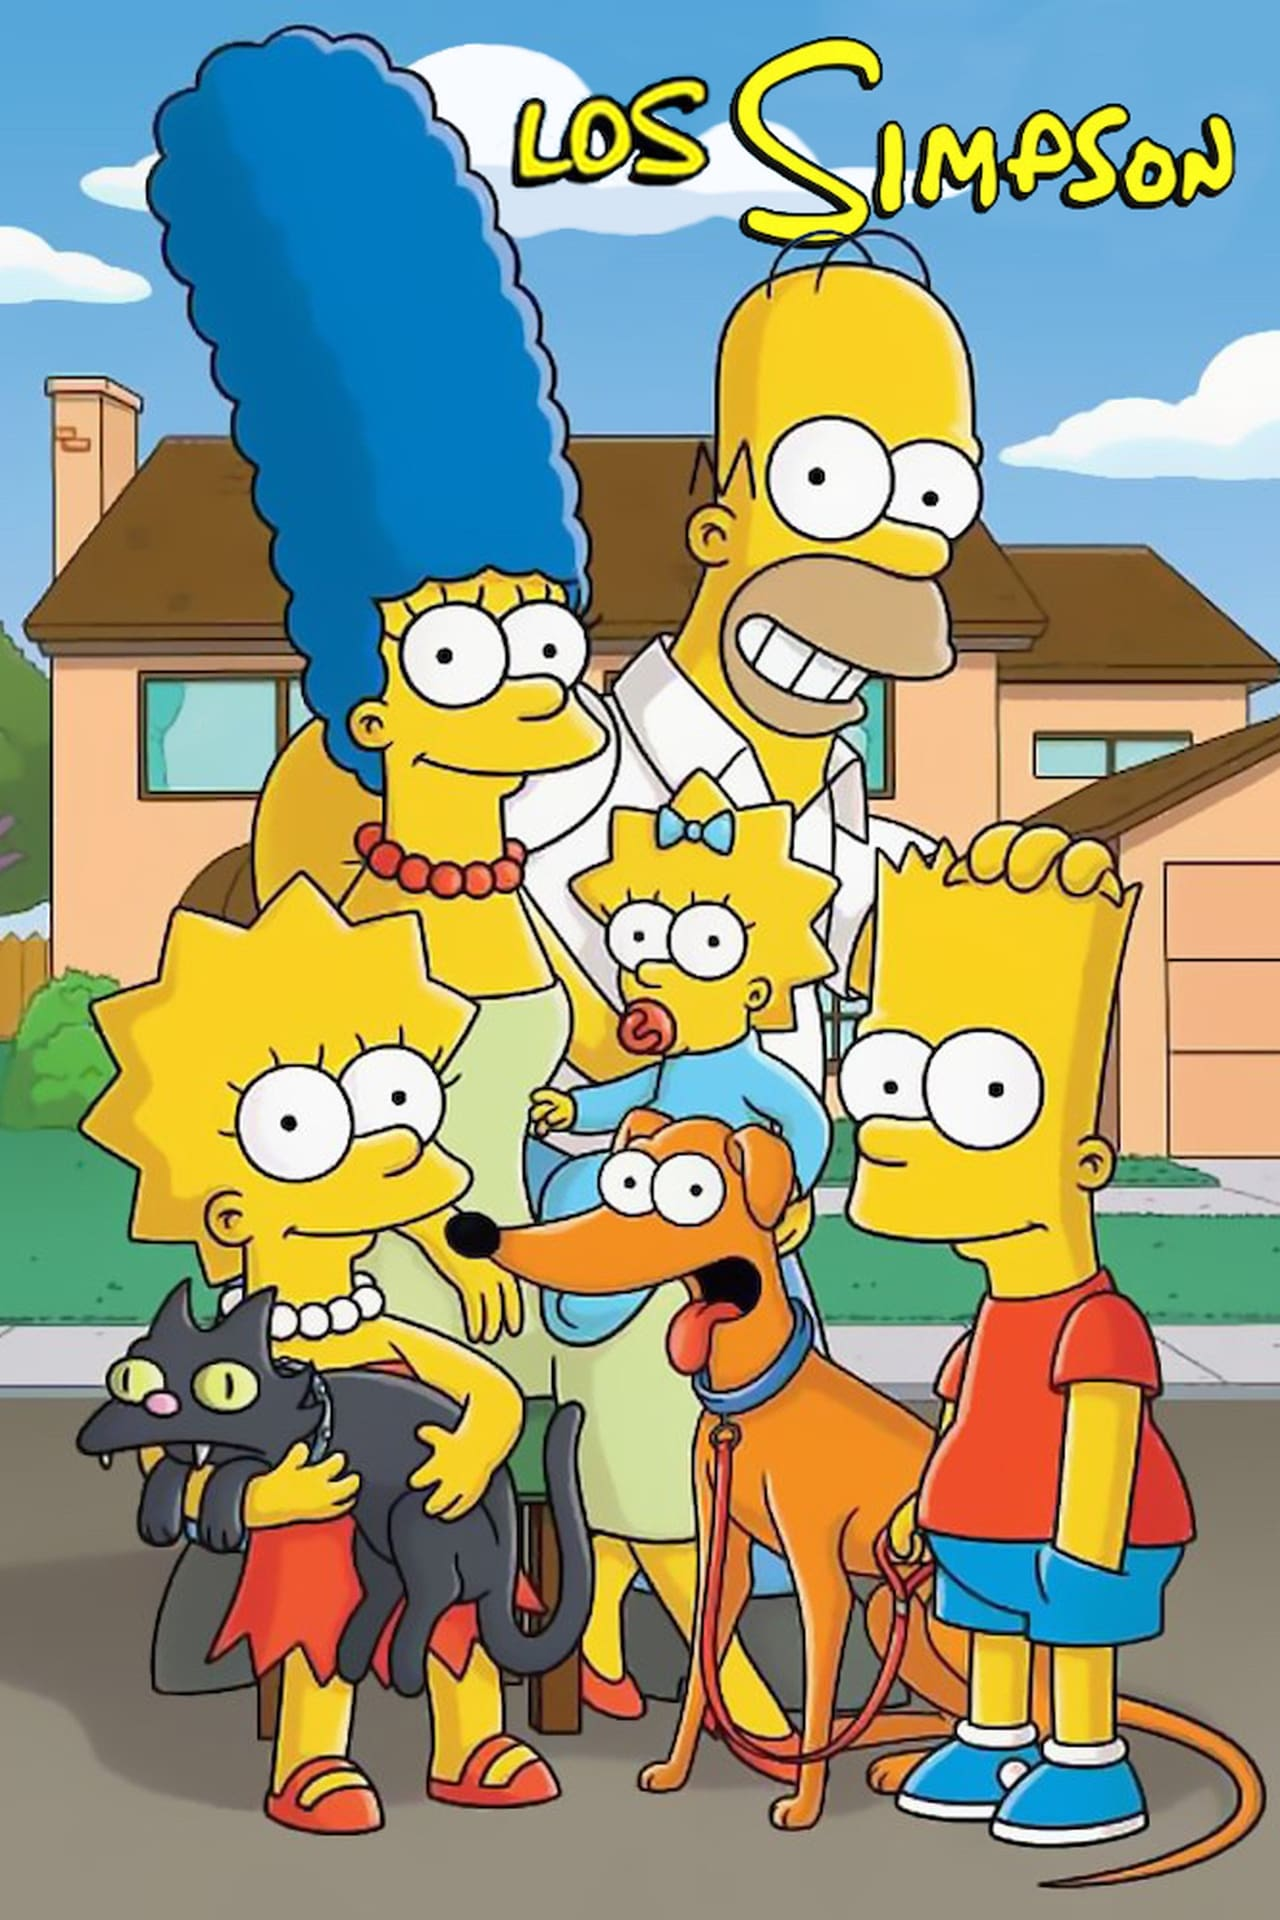 Los Simpson - Season 14 Episode 15 : Presidente ejecutivo...¡Jo!